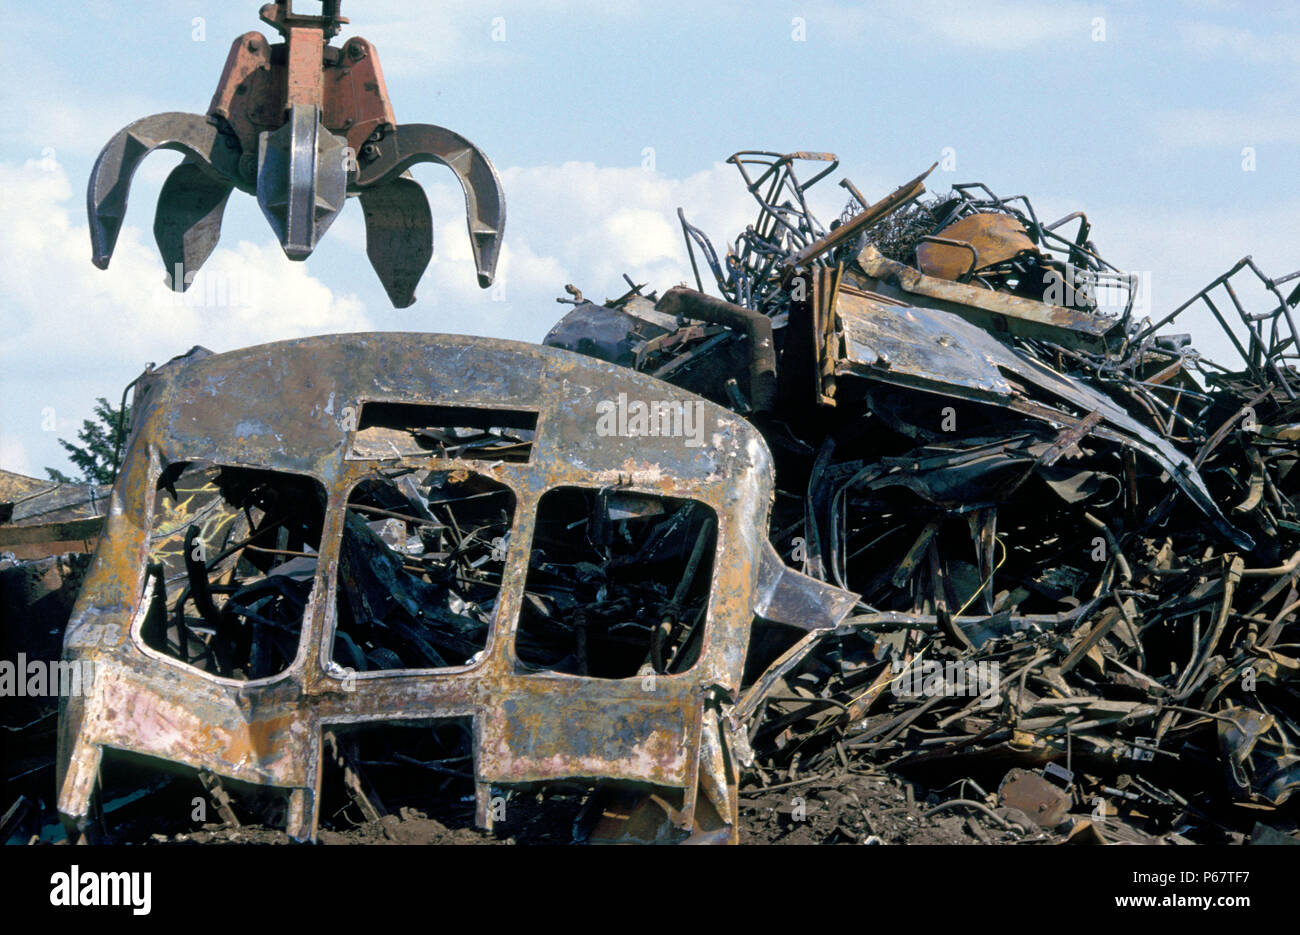 Scrapped DMUs after cutting up at Mayer Newman's breakers yard near Ipswich. C 1993 - Stock Image